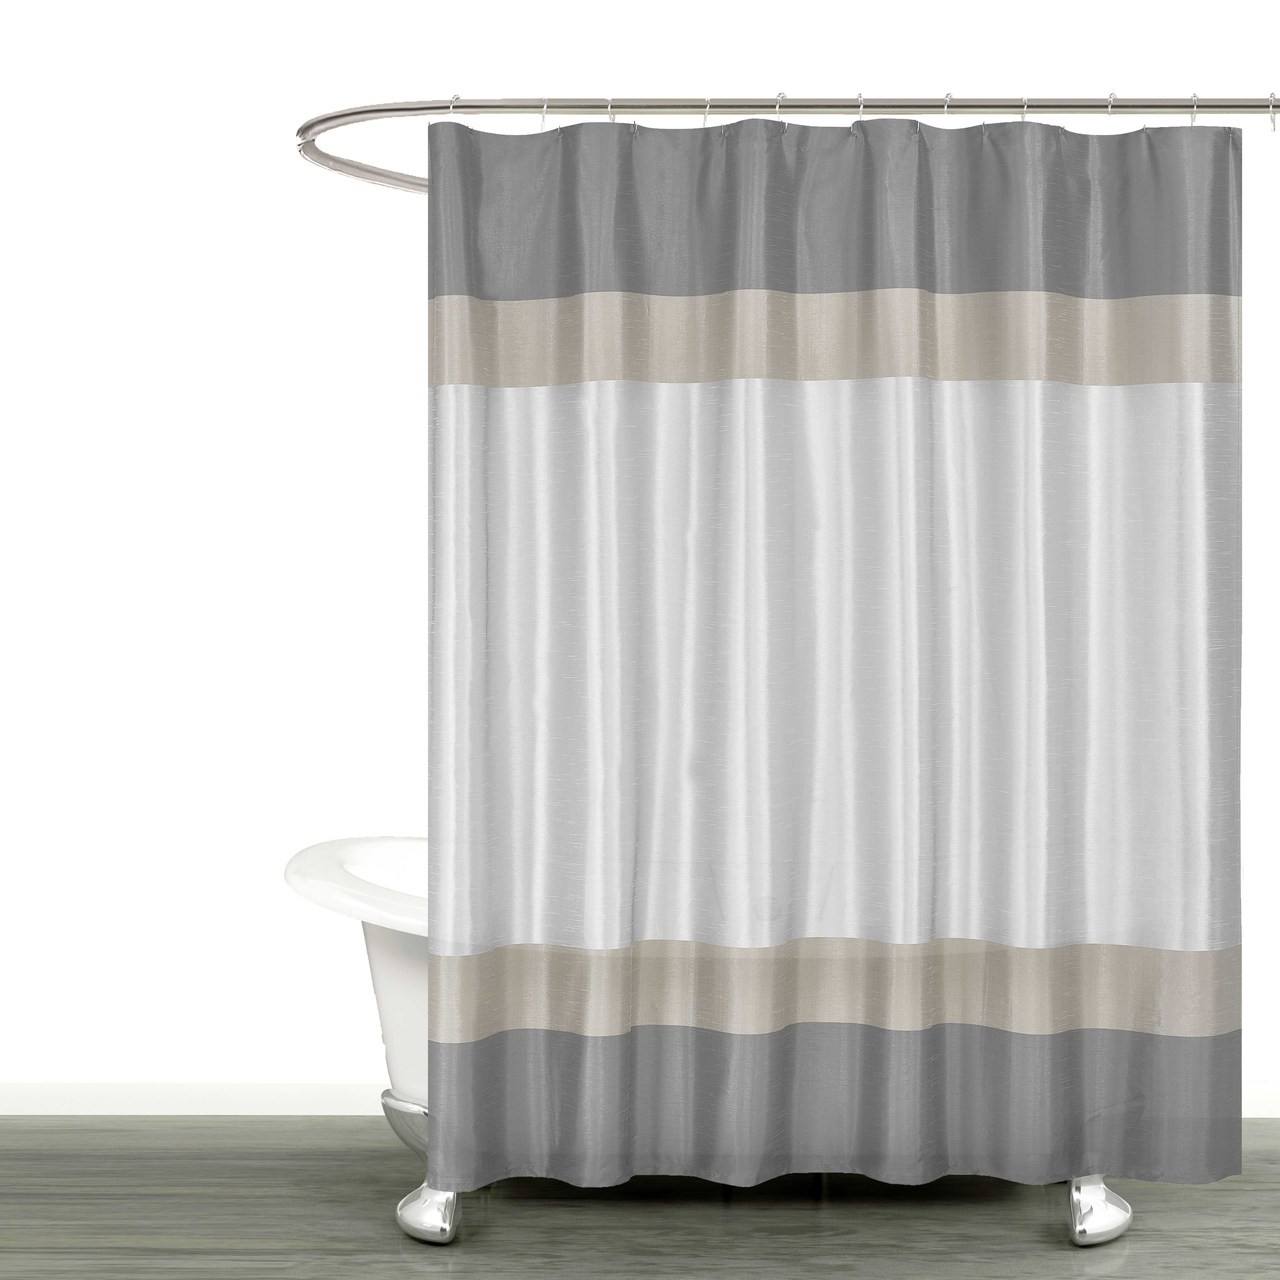 Gray Silver And Taupe Fabric Shower Curtain With Stripe Design Bathroom And More Collection 72 W X 78 Extra Long